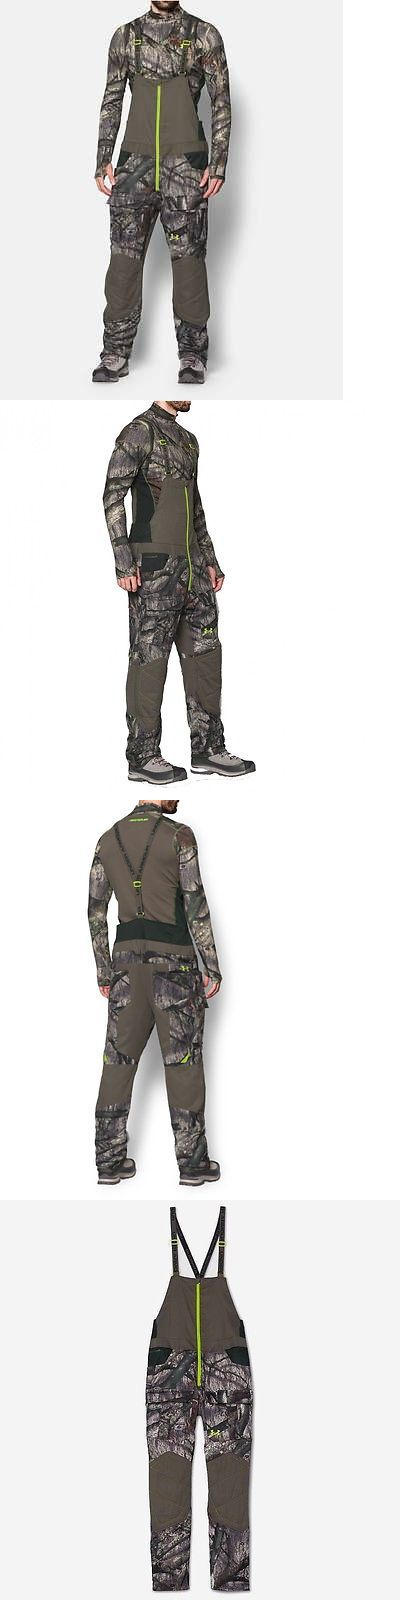 Pants and Bibs 177873: Under Armour Men Scent Control Hunting Bib Overall Infrared Pants Mossy Oak Tree -> BUY IT NOW ONLY: $119.99 on eBay!